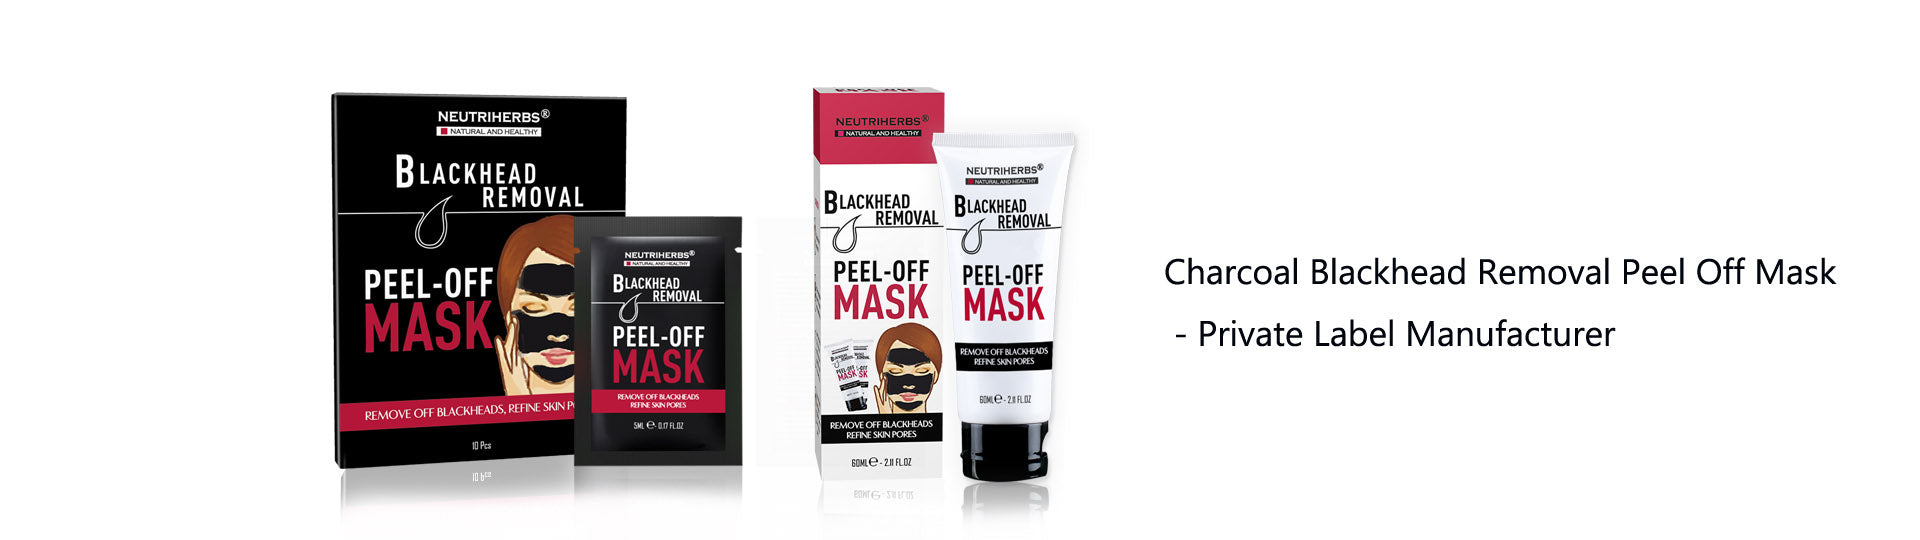 charcoal blackhead peel off removal mask faqs